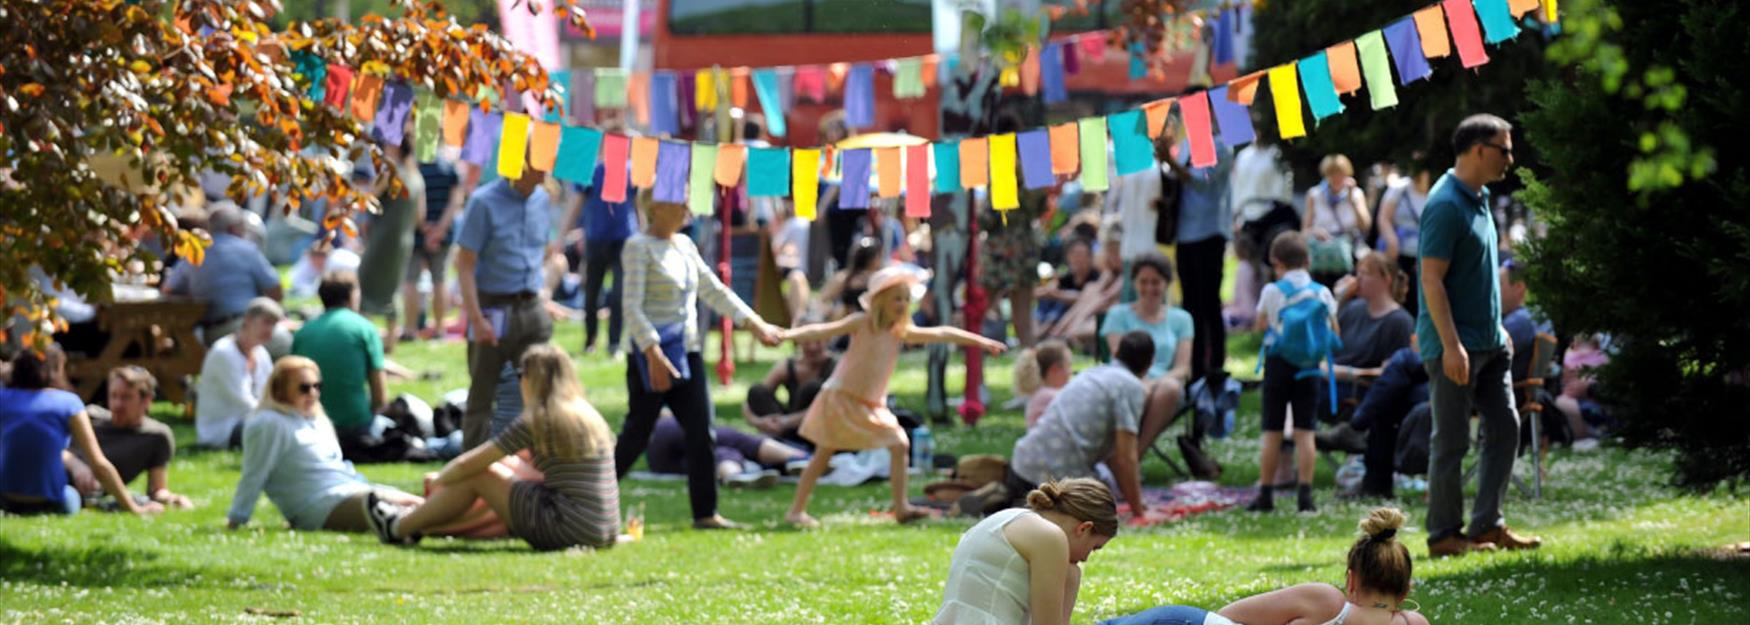 People enjoying the atmosphere in a park during a Festival